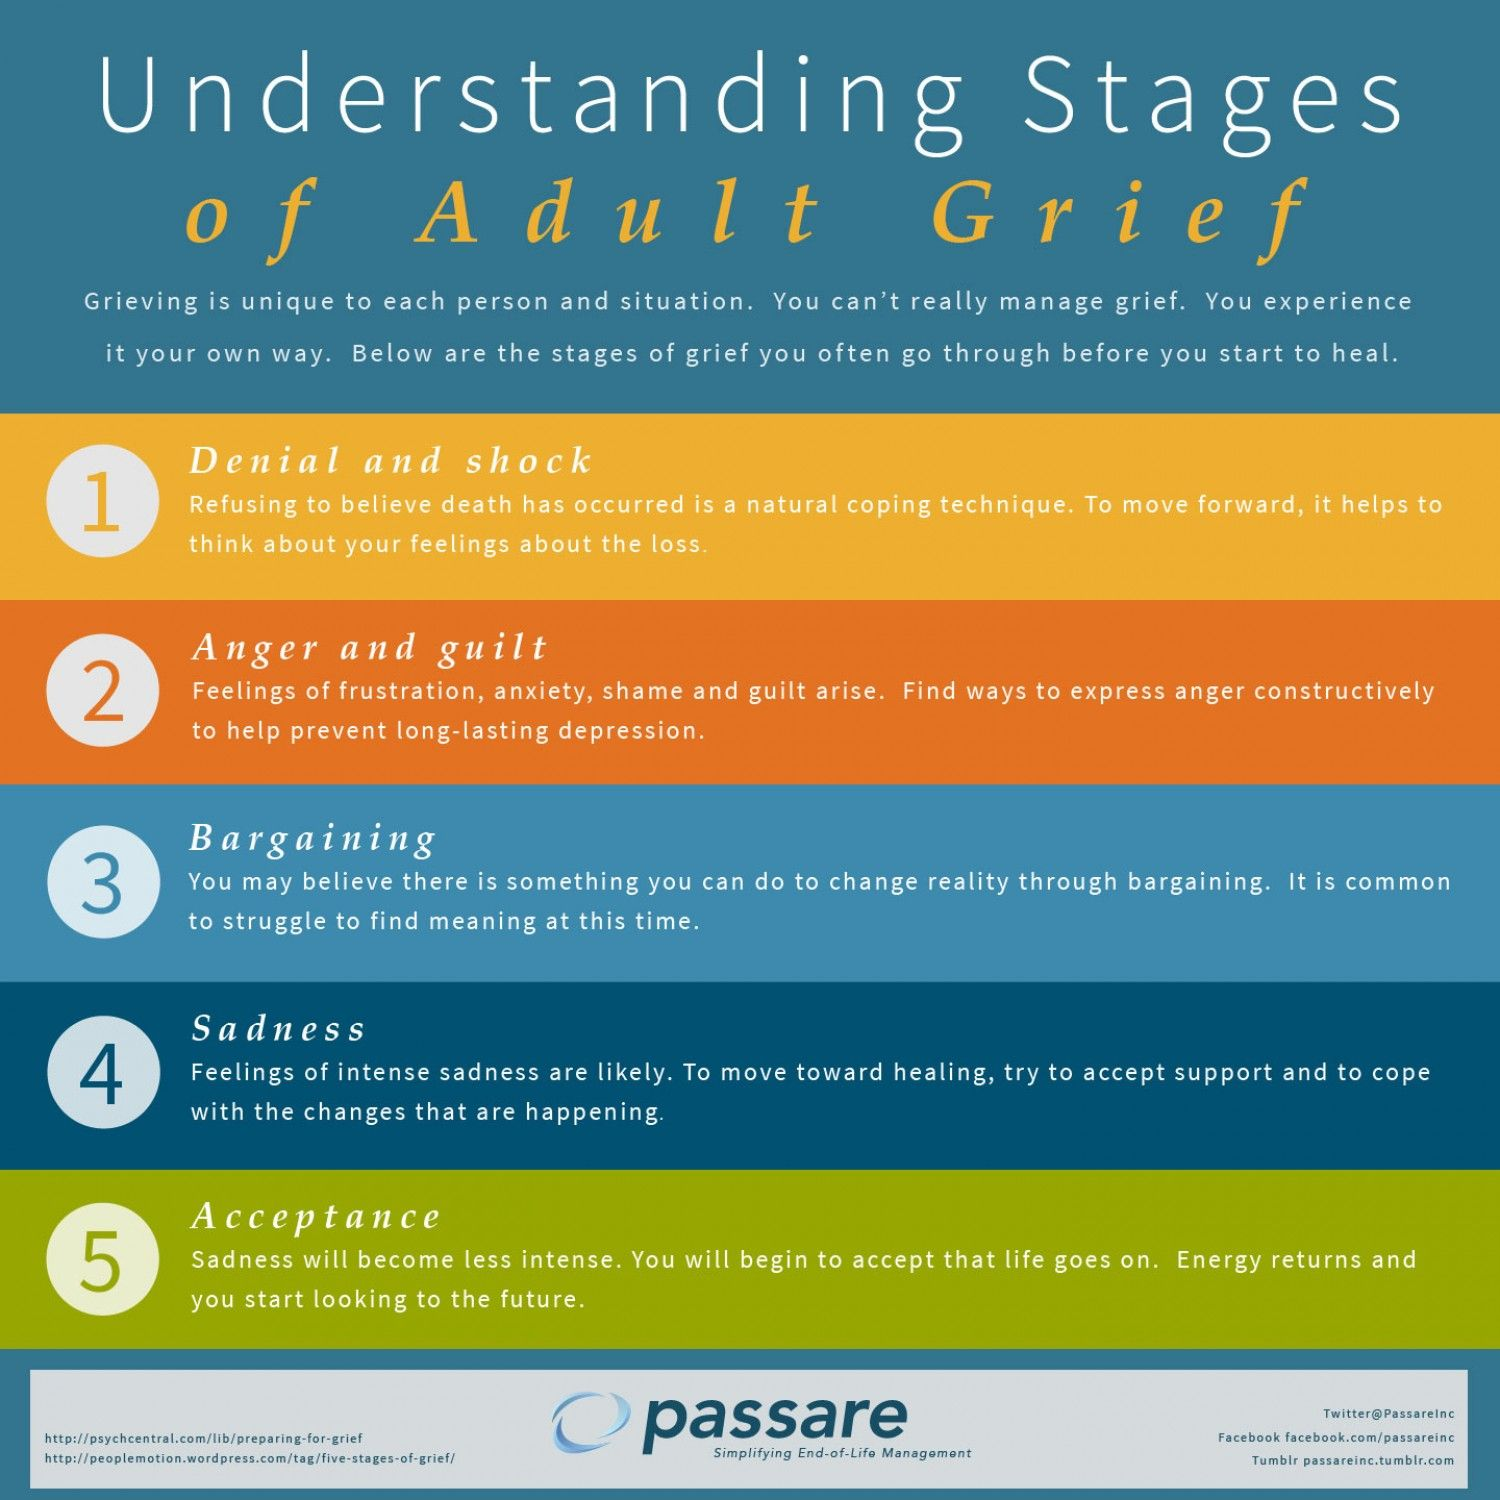 Adults Experience Grief In Different Ways They Understand That It Will Be With Them For The Rest Of Their Lives These Stages H Stages Of Grief Grief Bad News